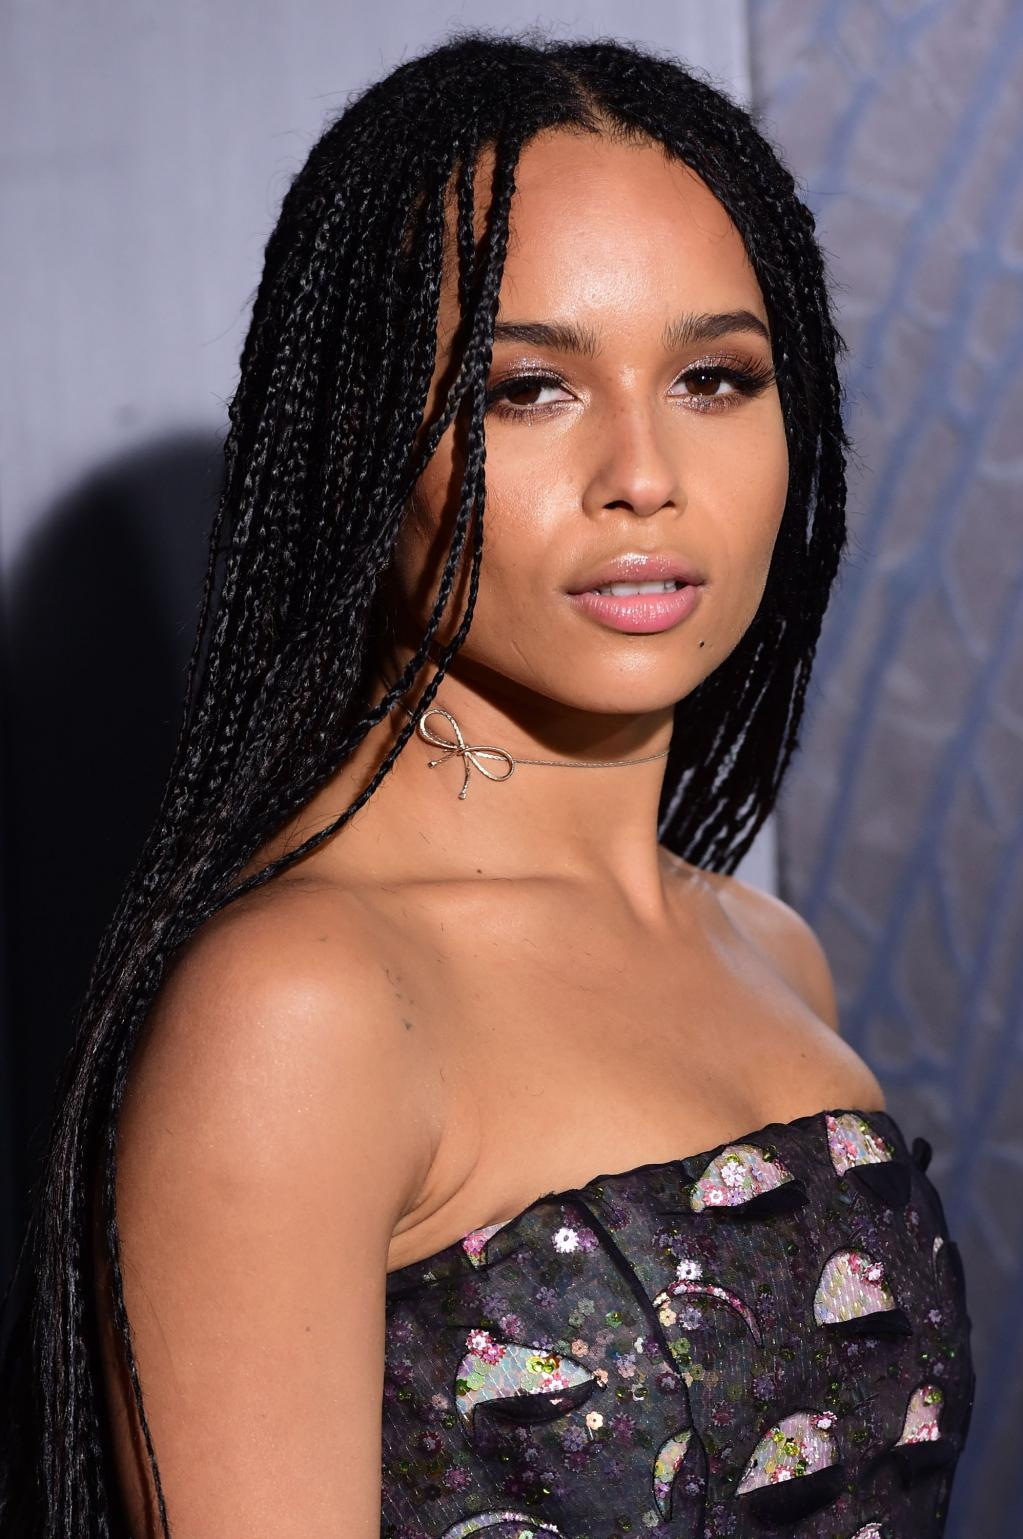 Zoe Kravitz Admits She Enjoyed Being 90 Pounds For Anorexic Movie